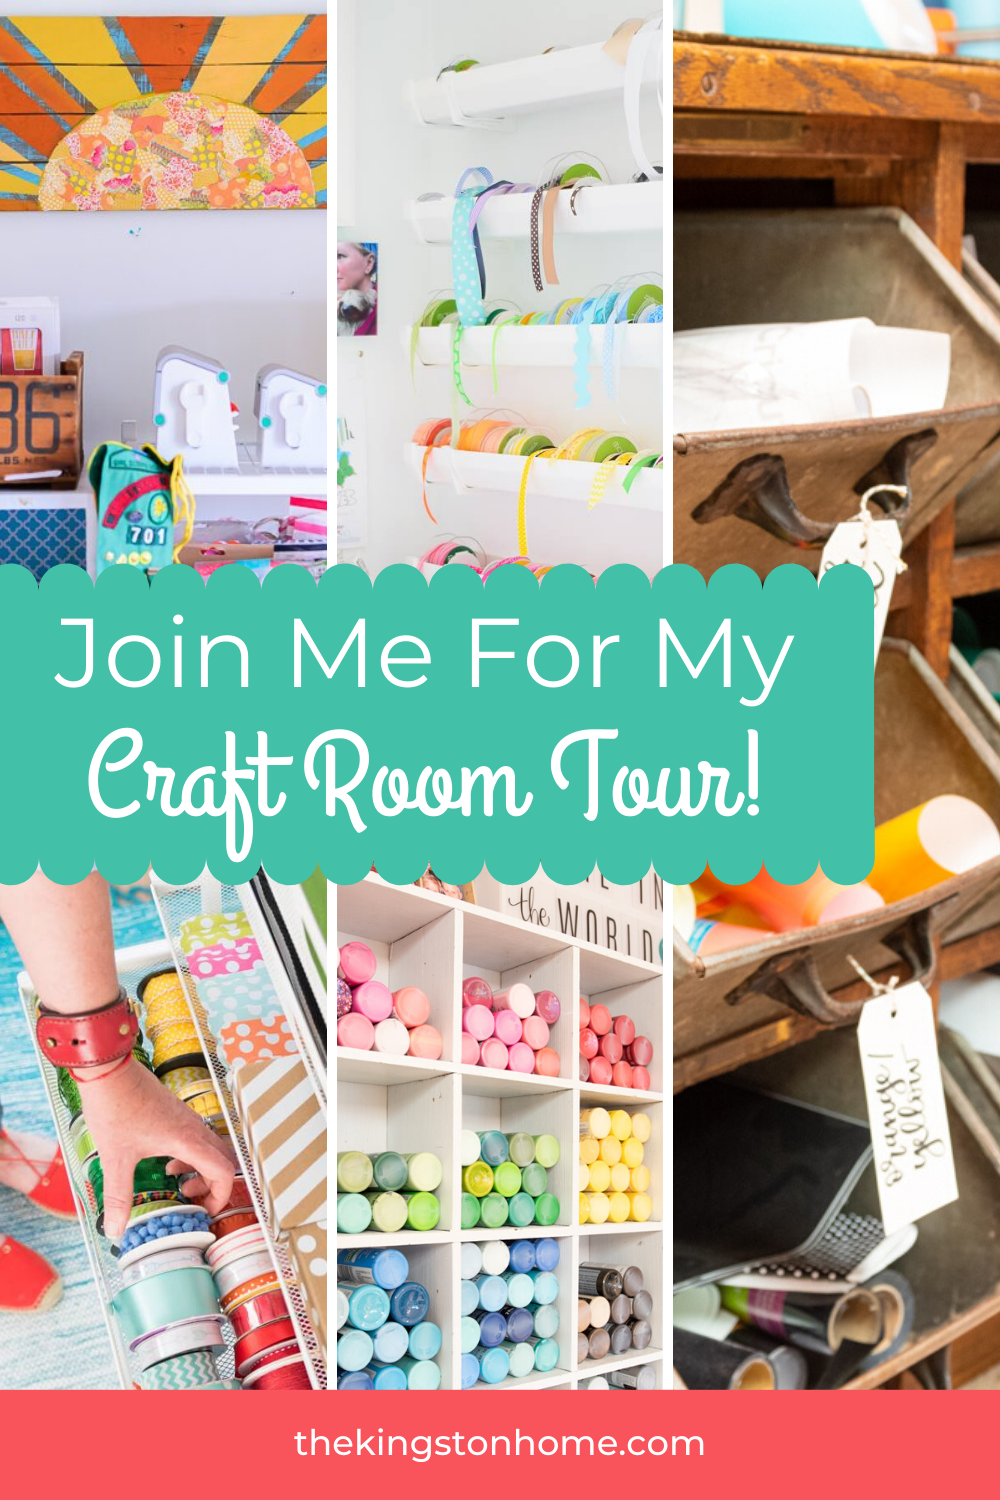 Join Me For My Craft Room Tour - The Kingston Home: Let's talk about craft room organization! Whether you've got a large room, a small closet or are crafting on your dining room table – I've joined with some of my favorite people to share our favorite storage and organization tips from our own craft rooms via @craftykingstons